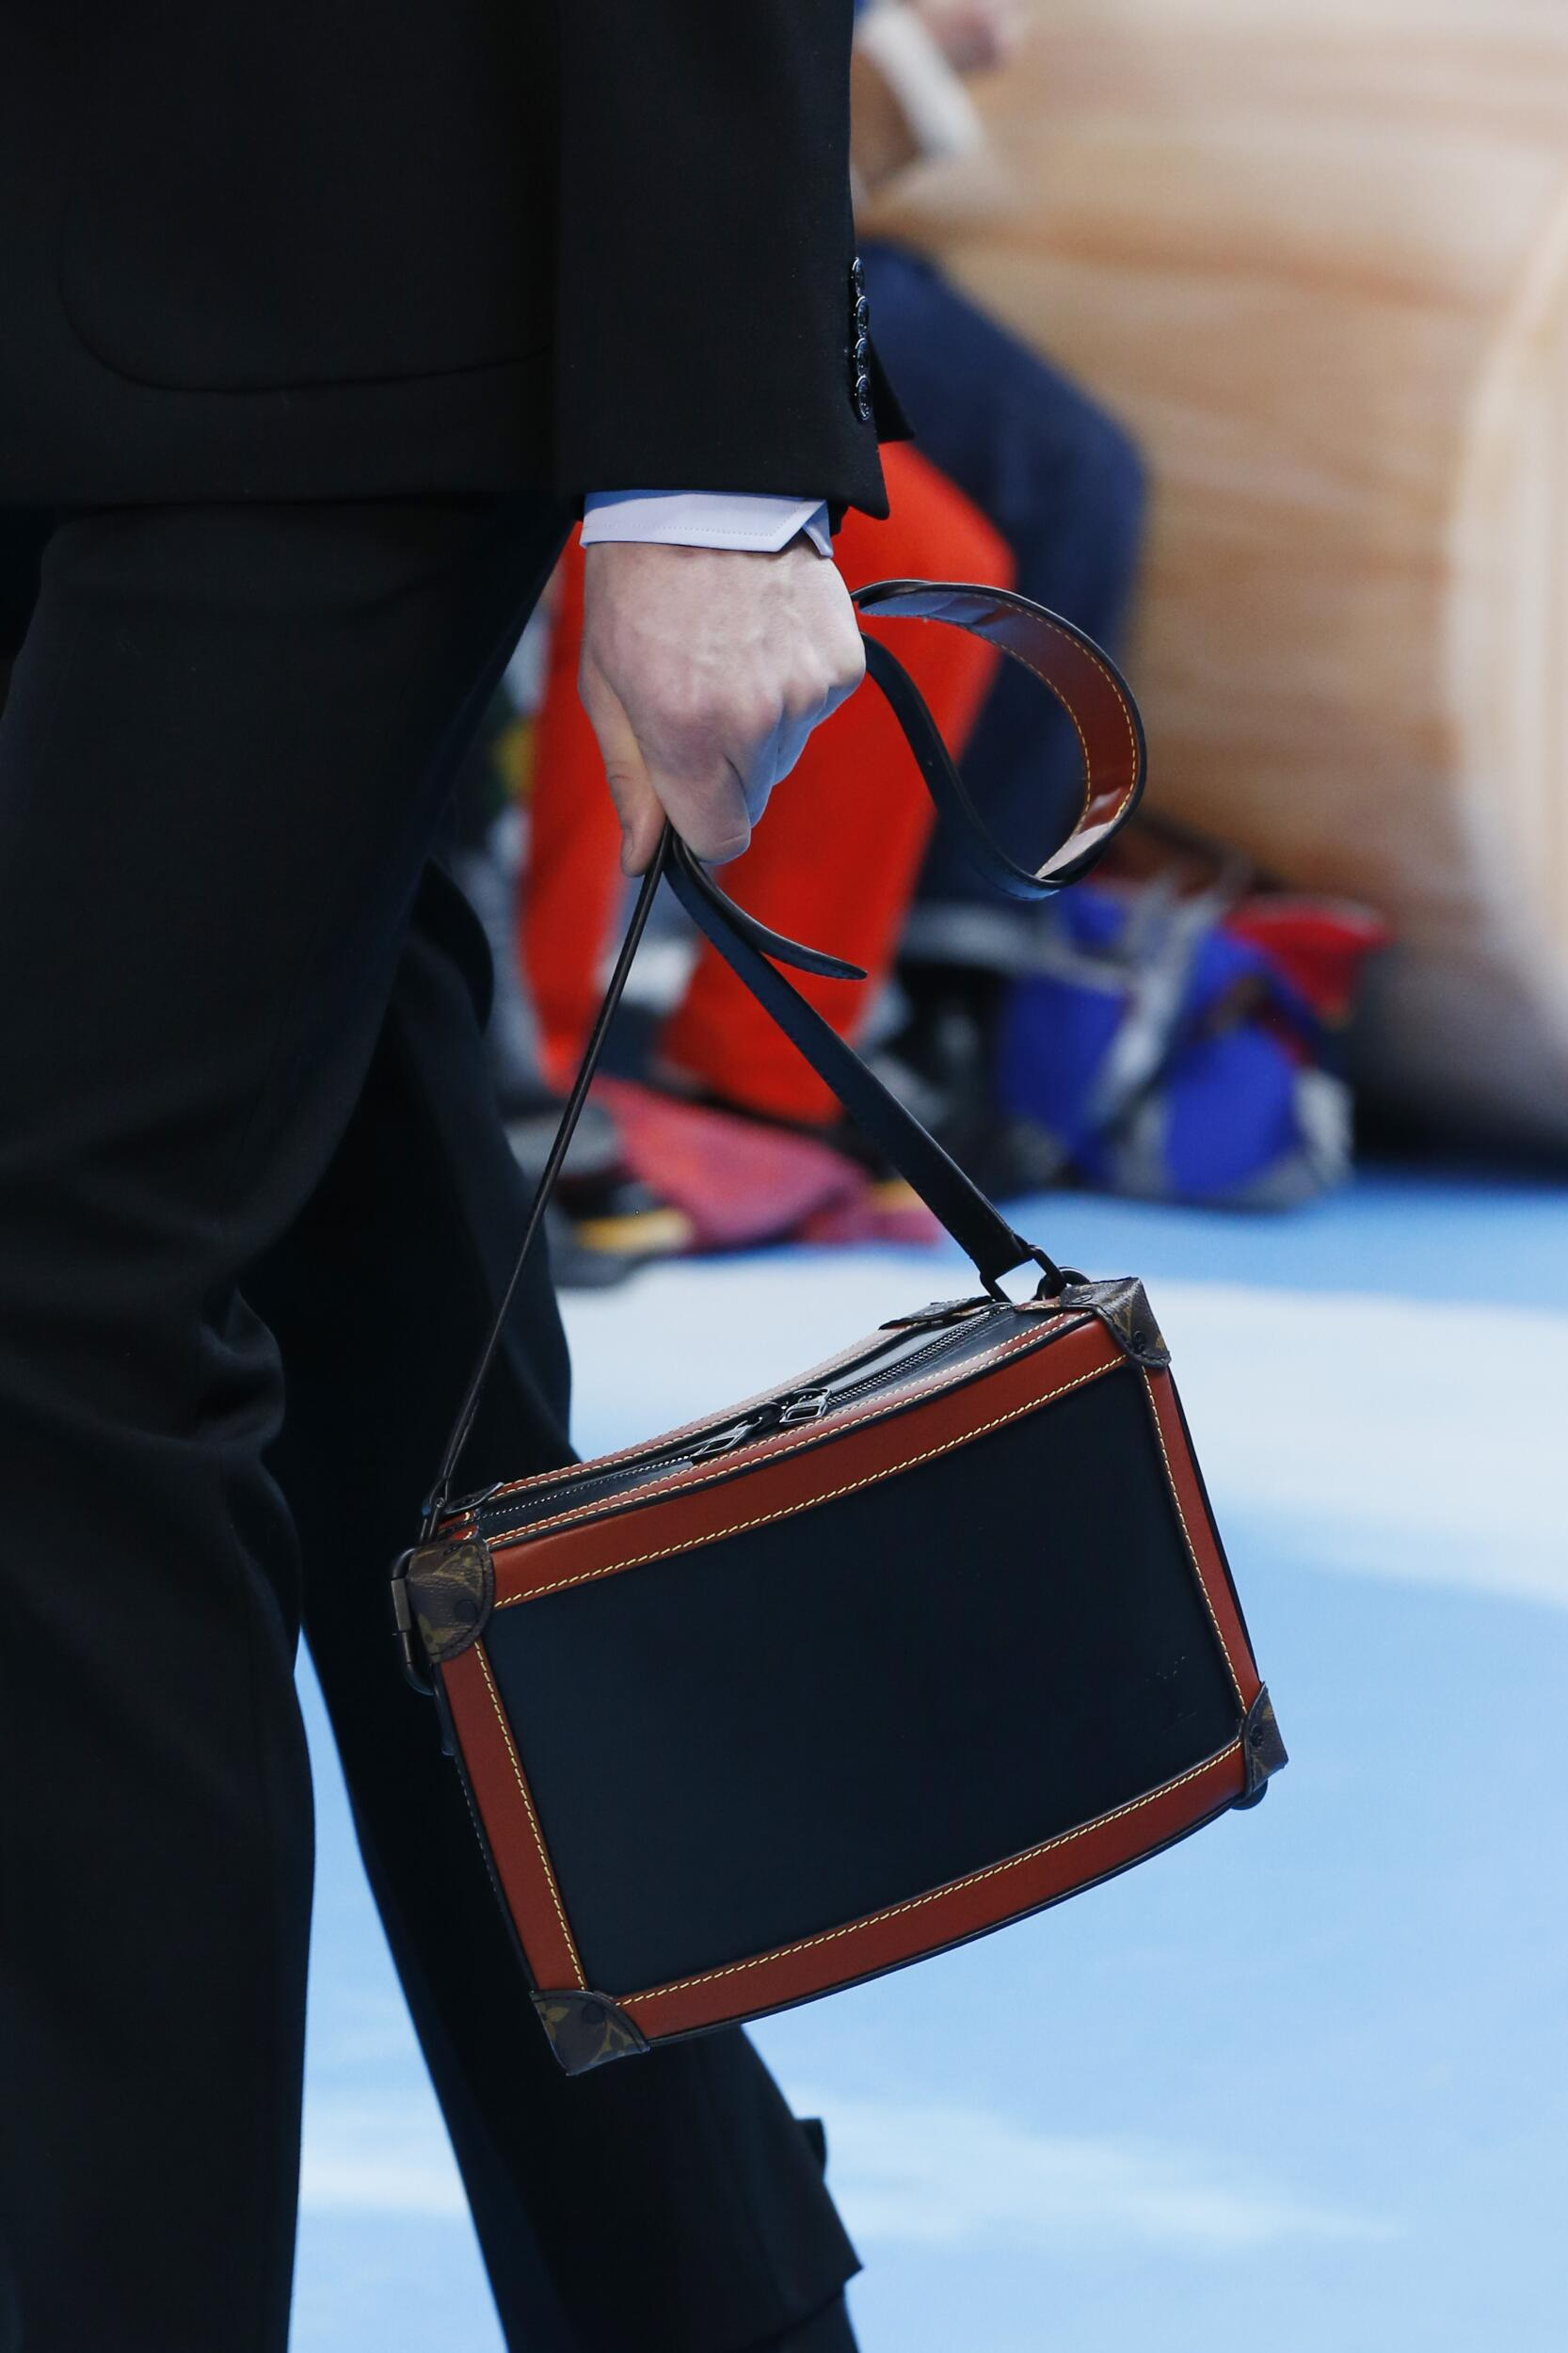 Menswear Handbag 2020 Louis Vuitton